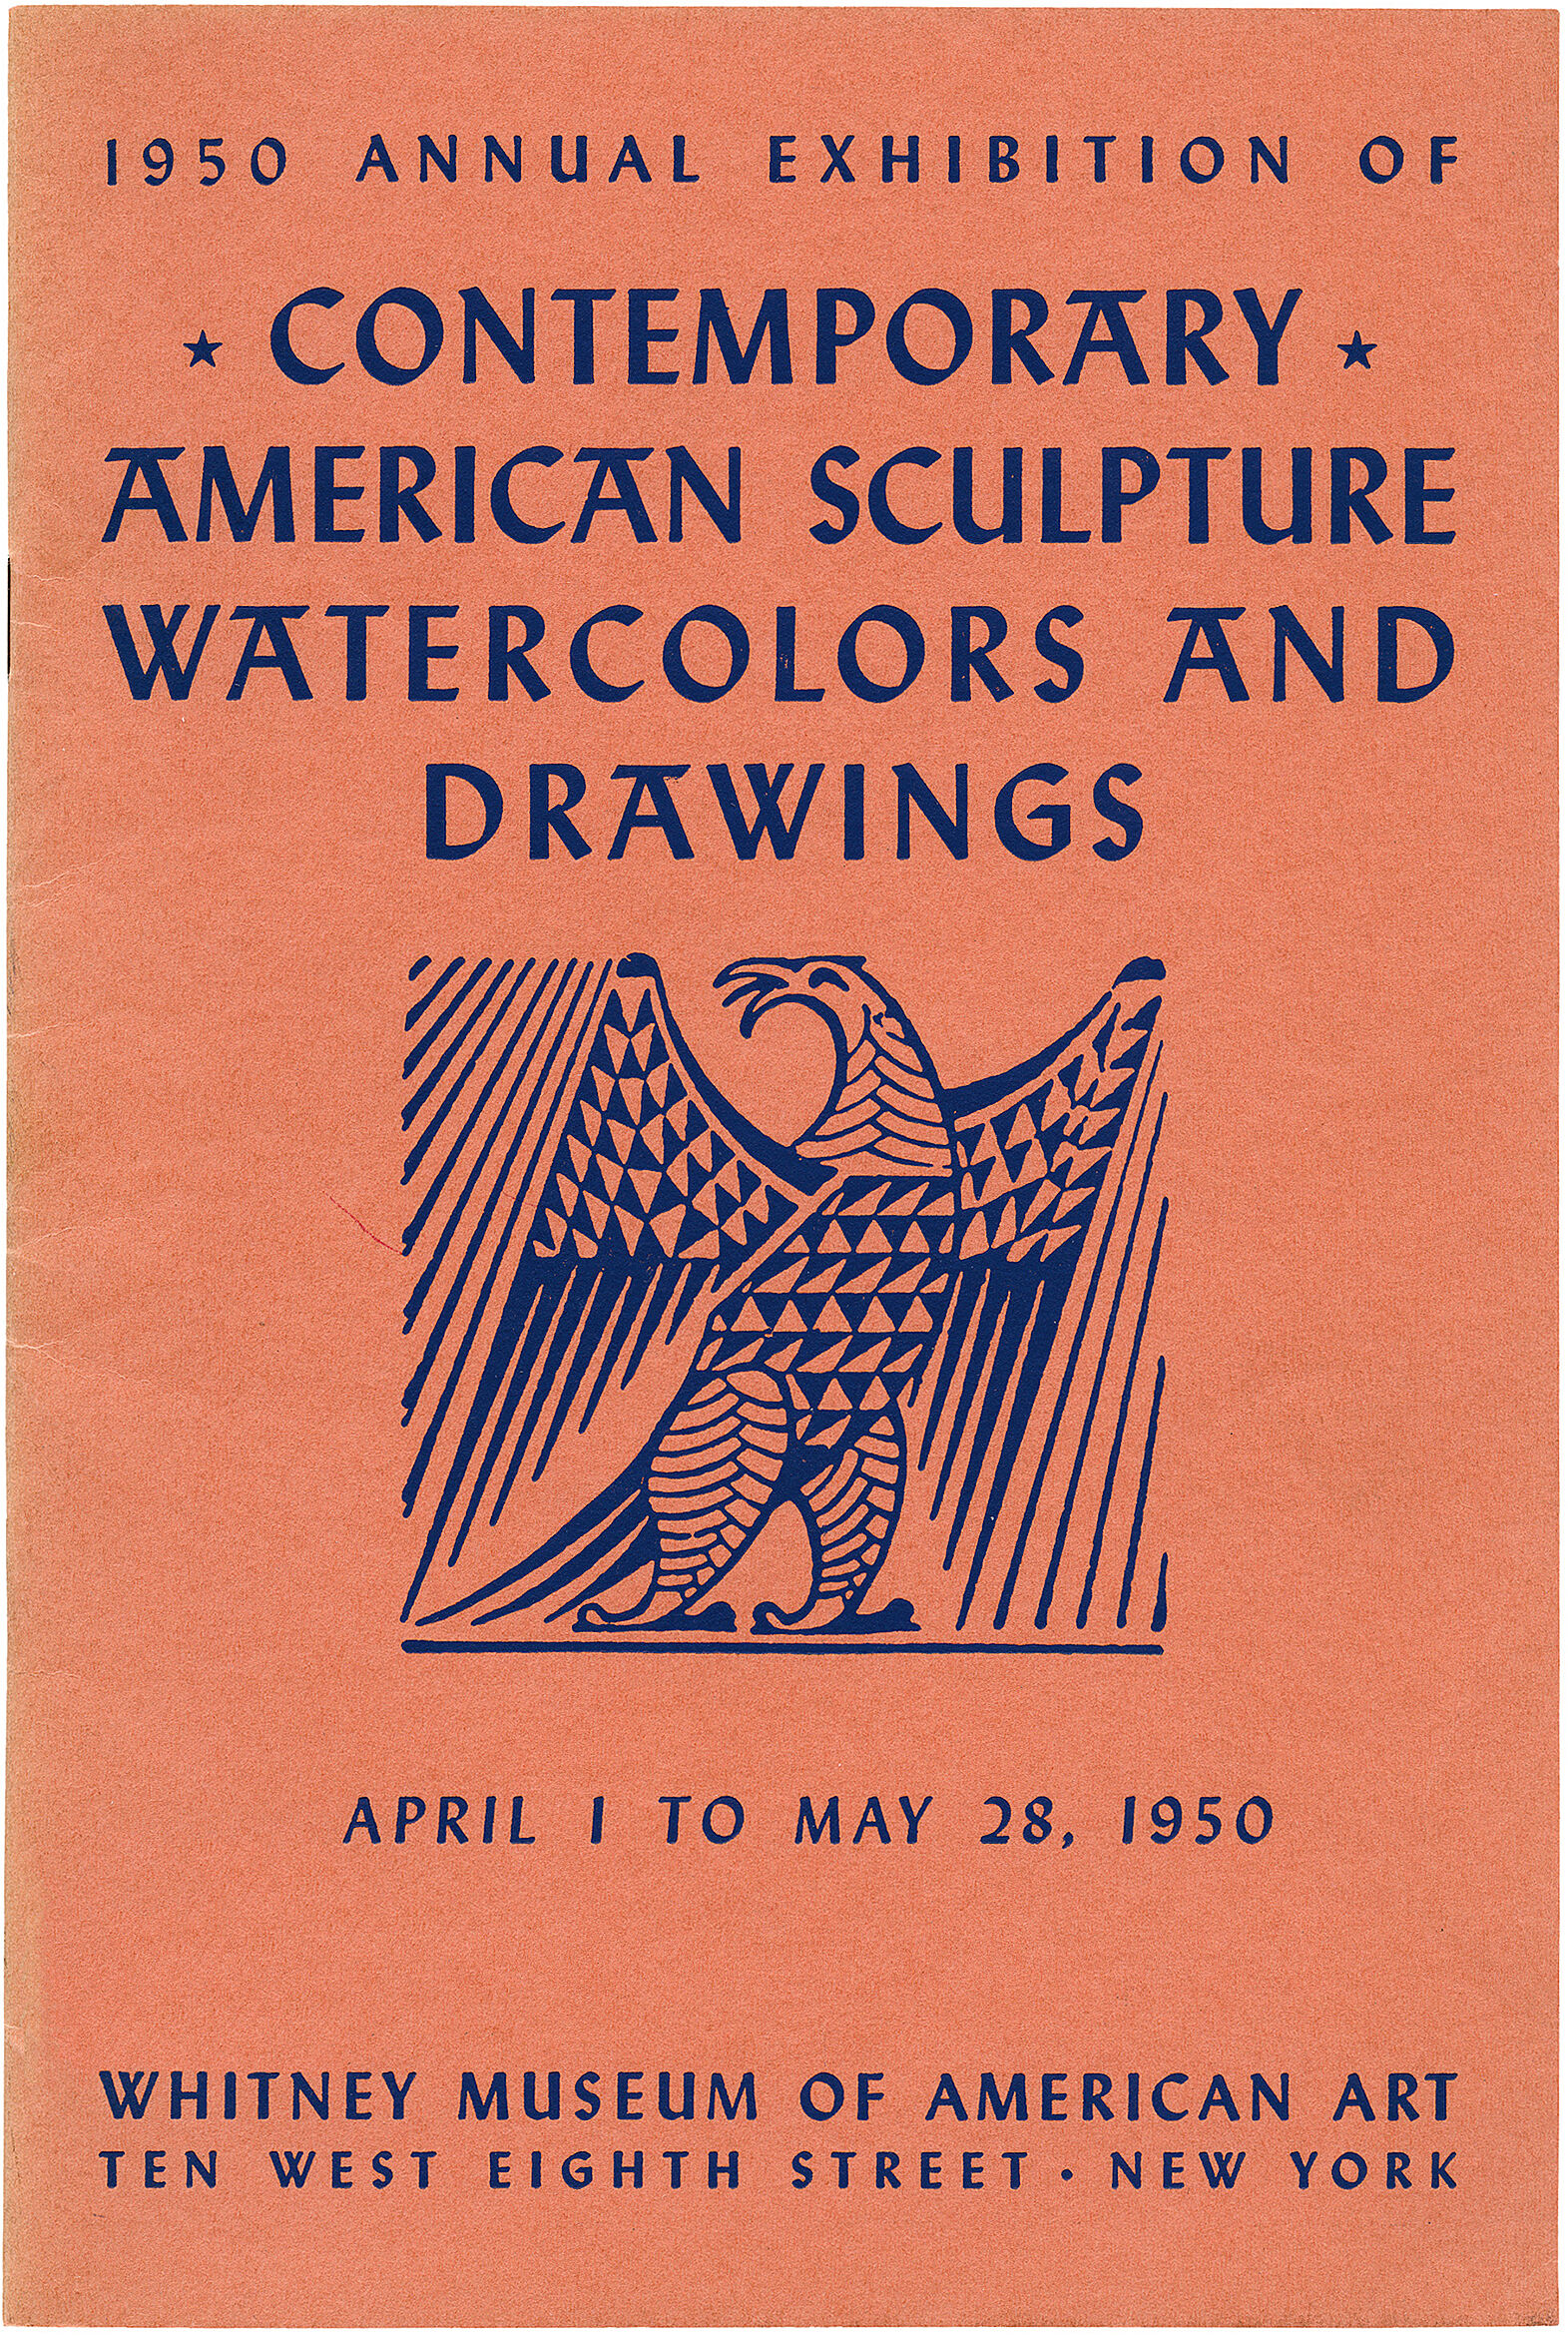 Cover for 1950 Annual Exhibition of Contemporary American Sculpture, Watercolors and Drawings catalogue